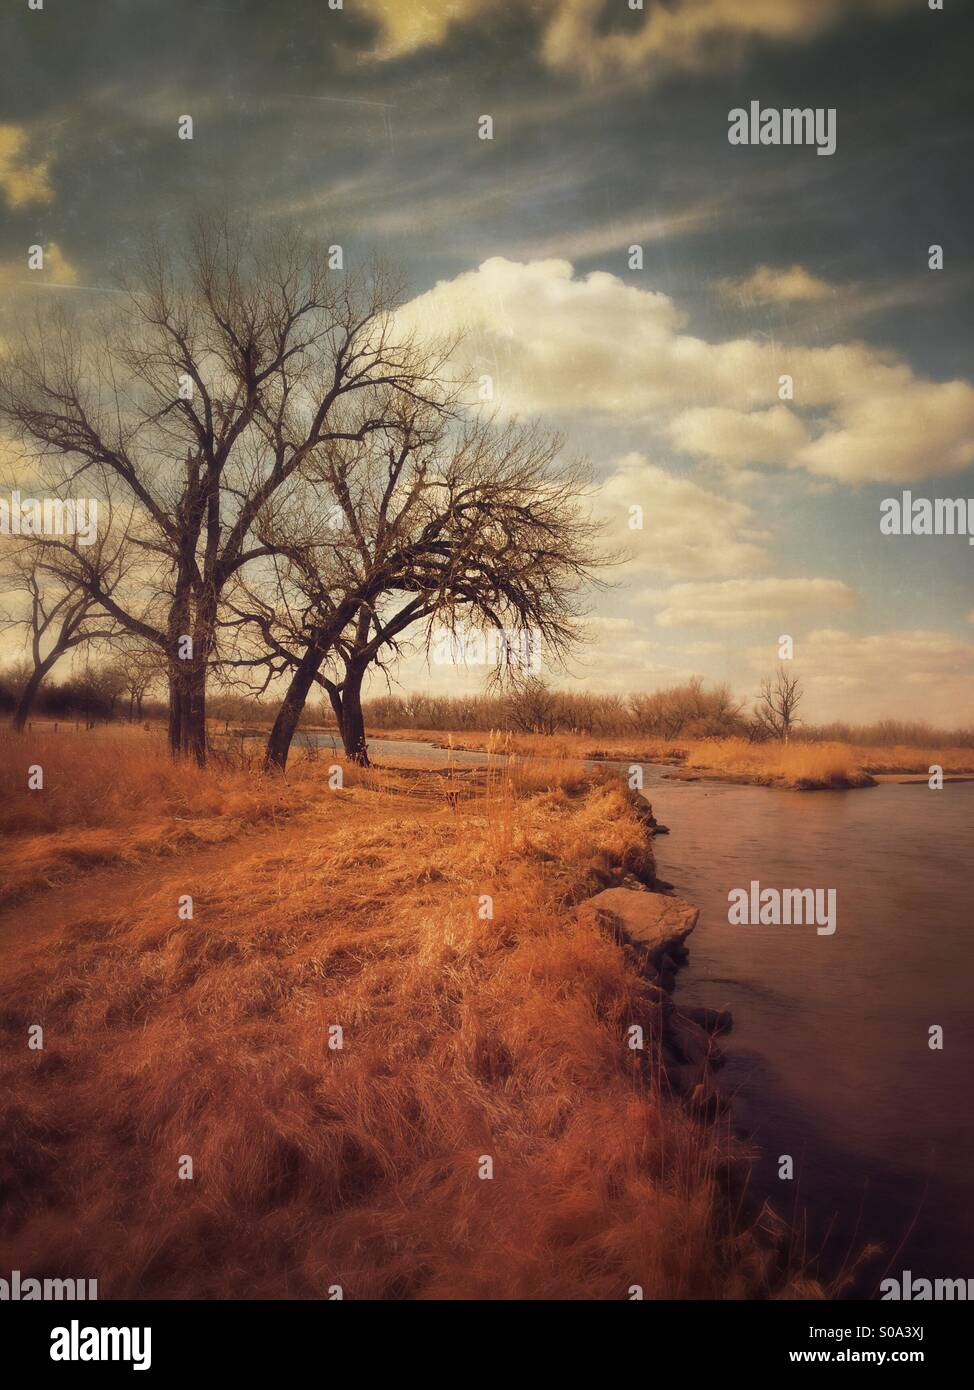 Trees along the riverbank. - Stock Image